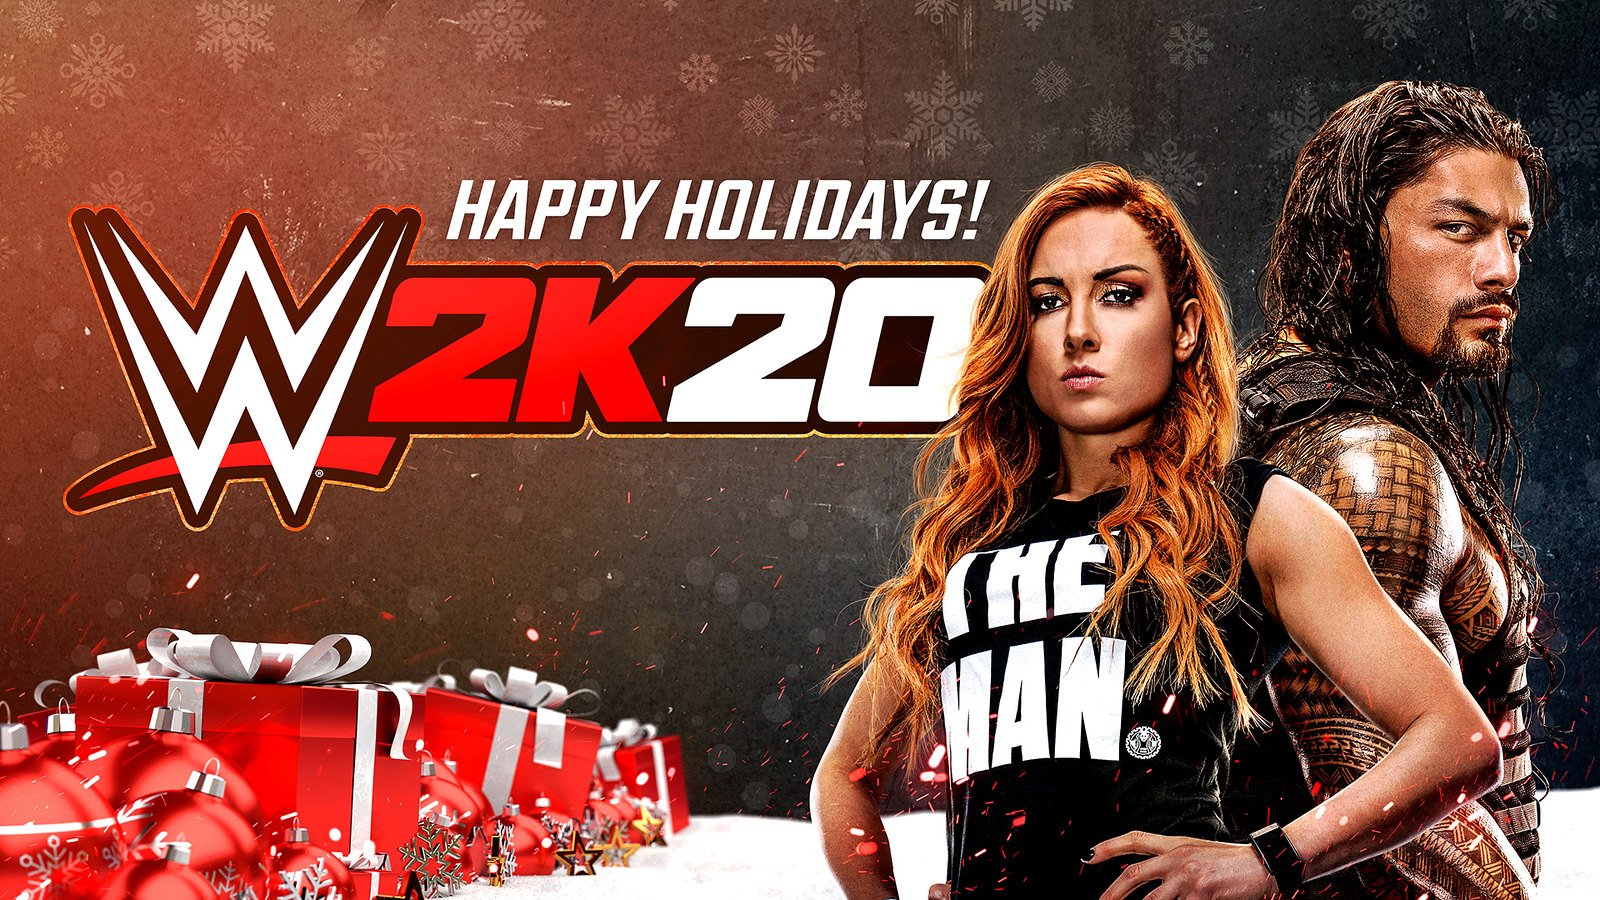 Wwe 2k20 Happy Holidays Wallpaper Picture